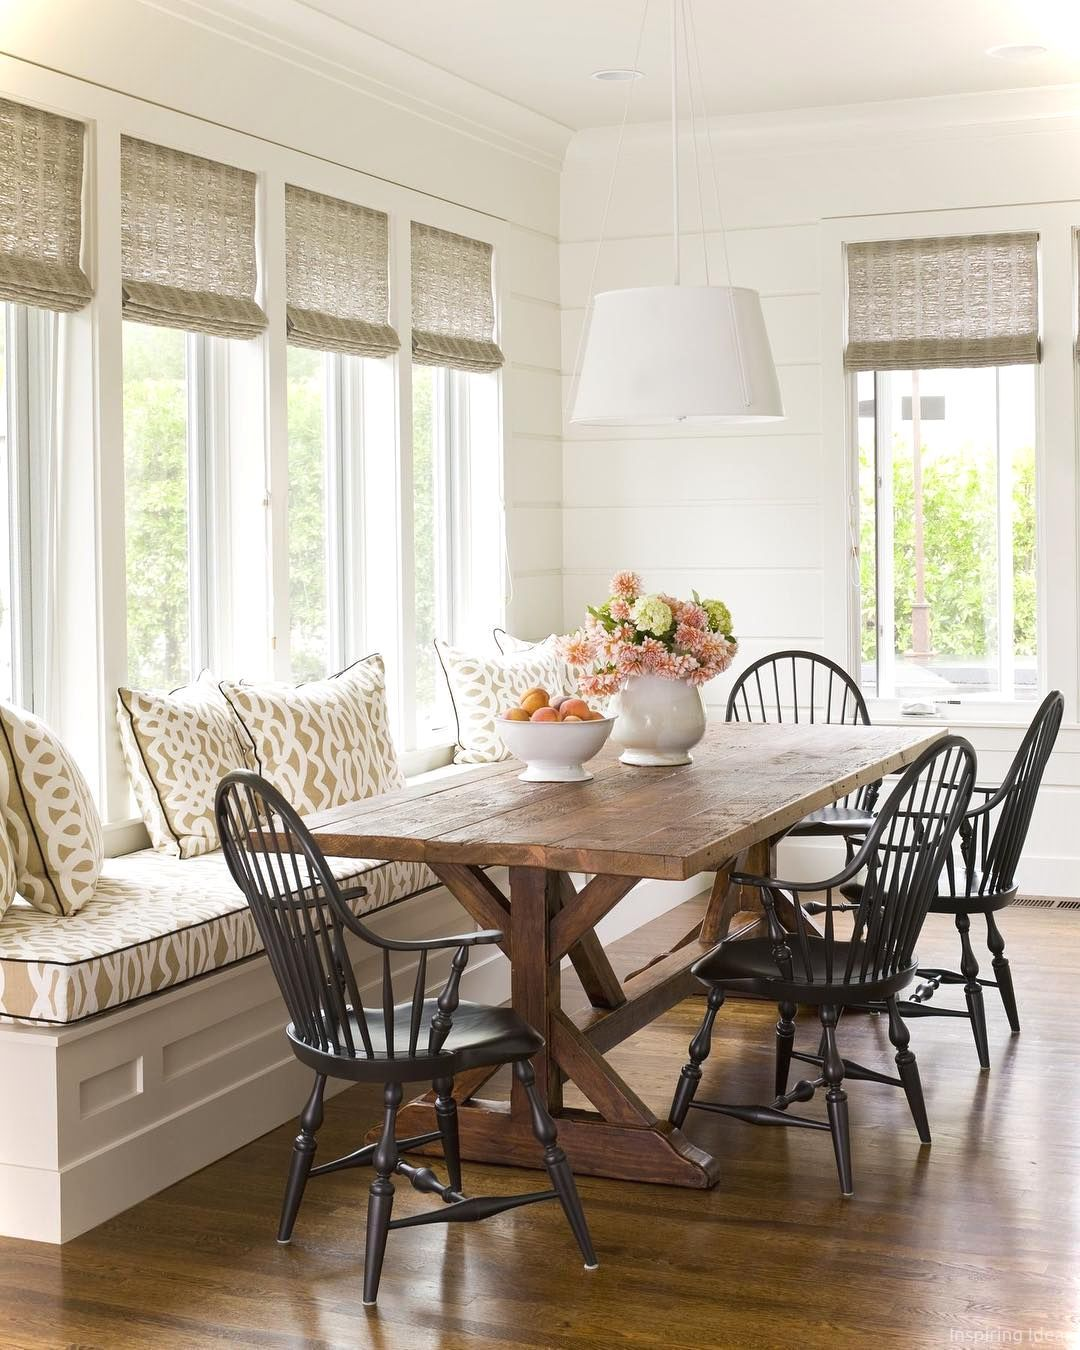 80 Awesome Banquette Seating Ideas for Your Kitchen